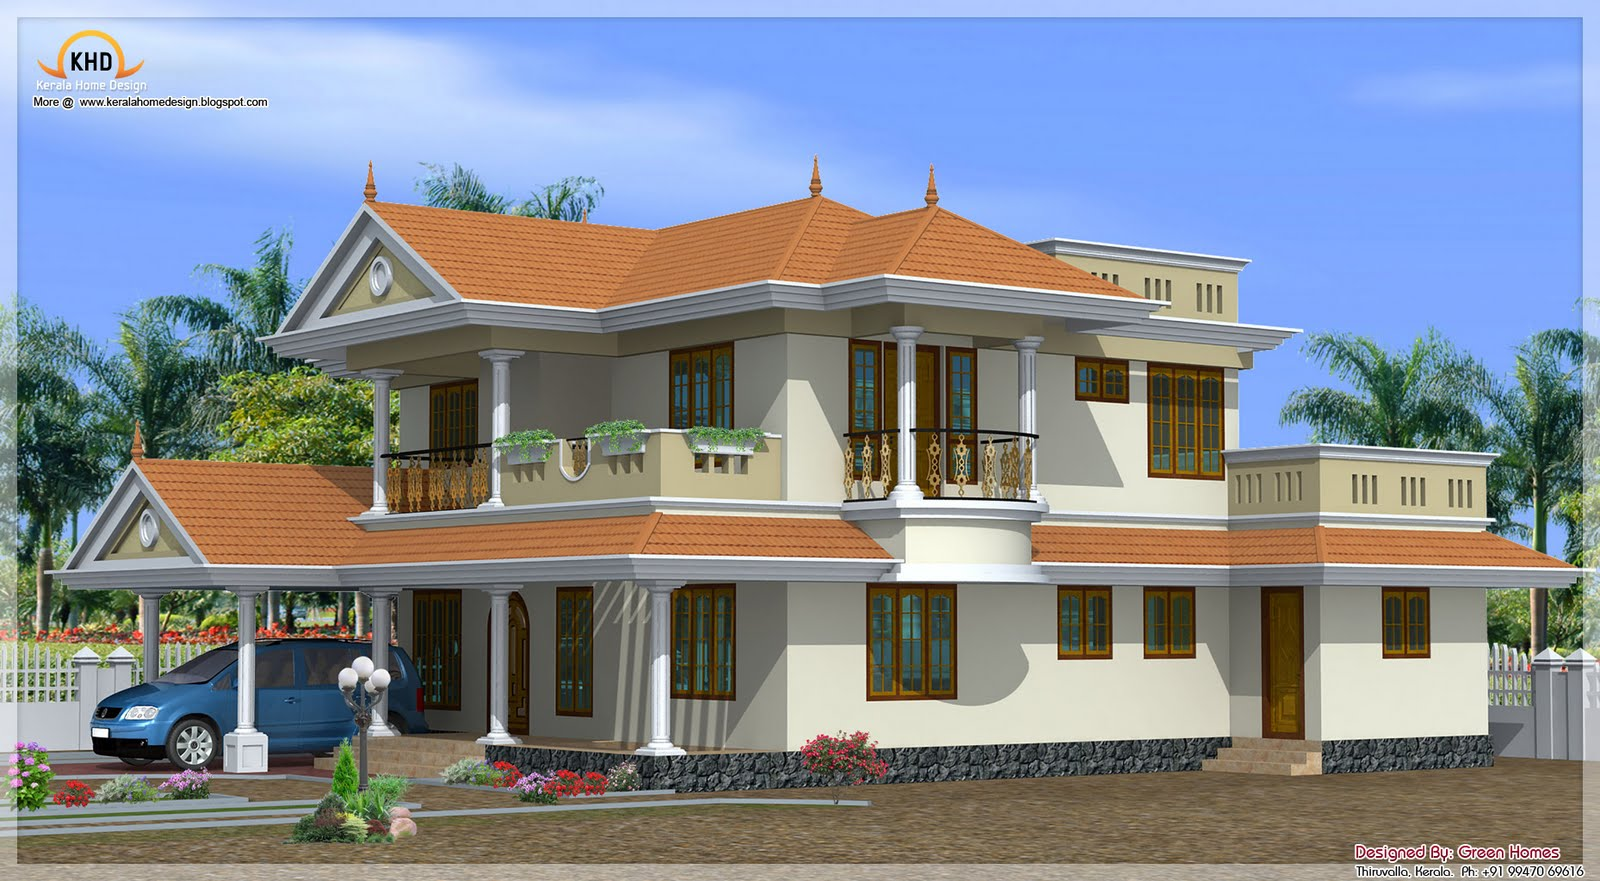 Indian home design indian home decor Indian home design